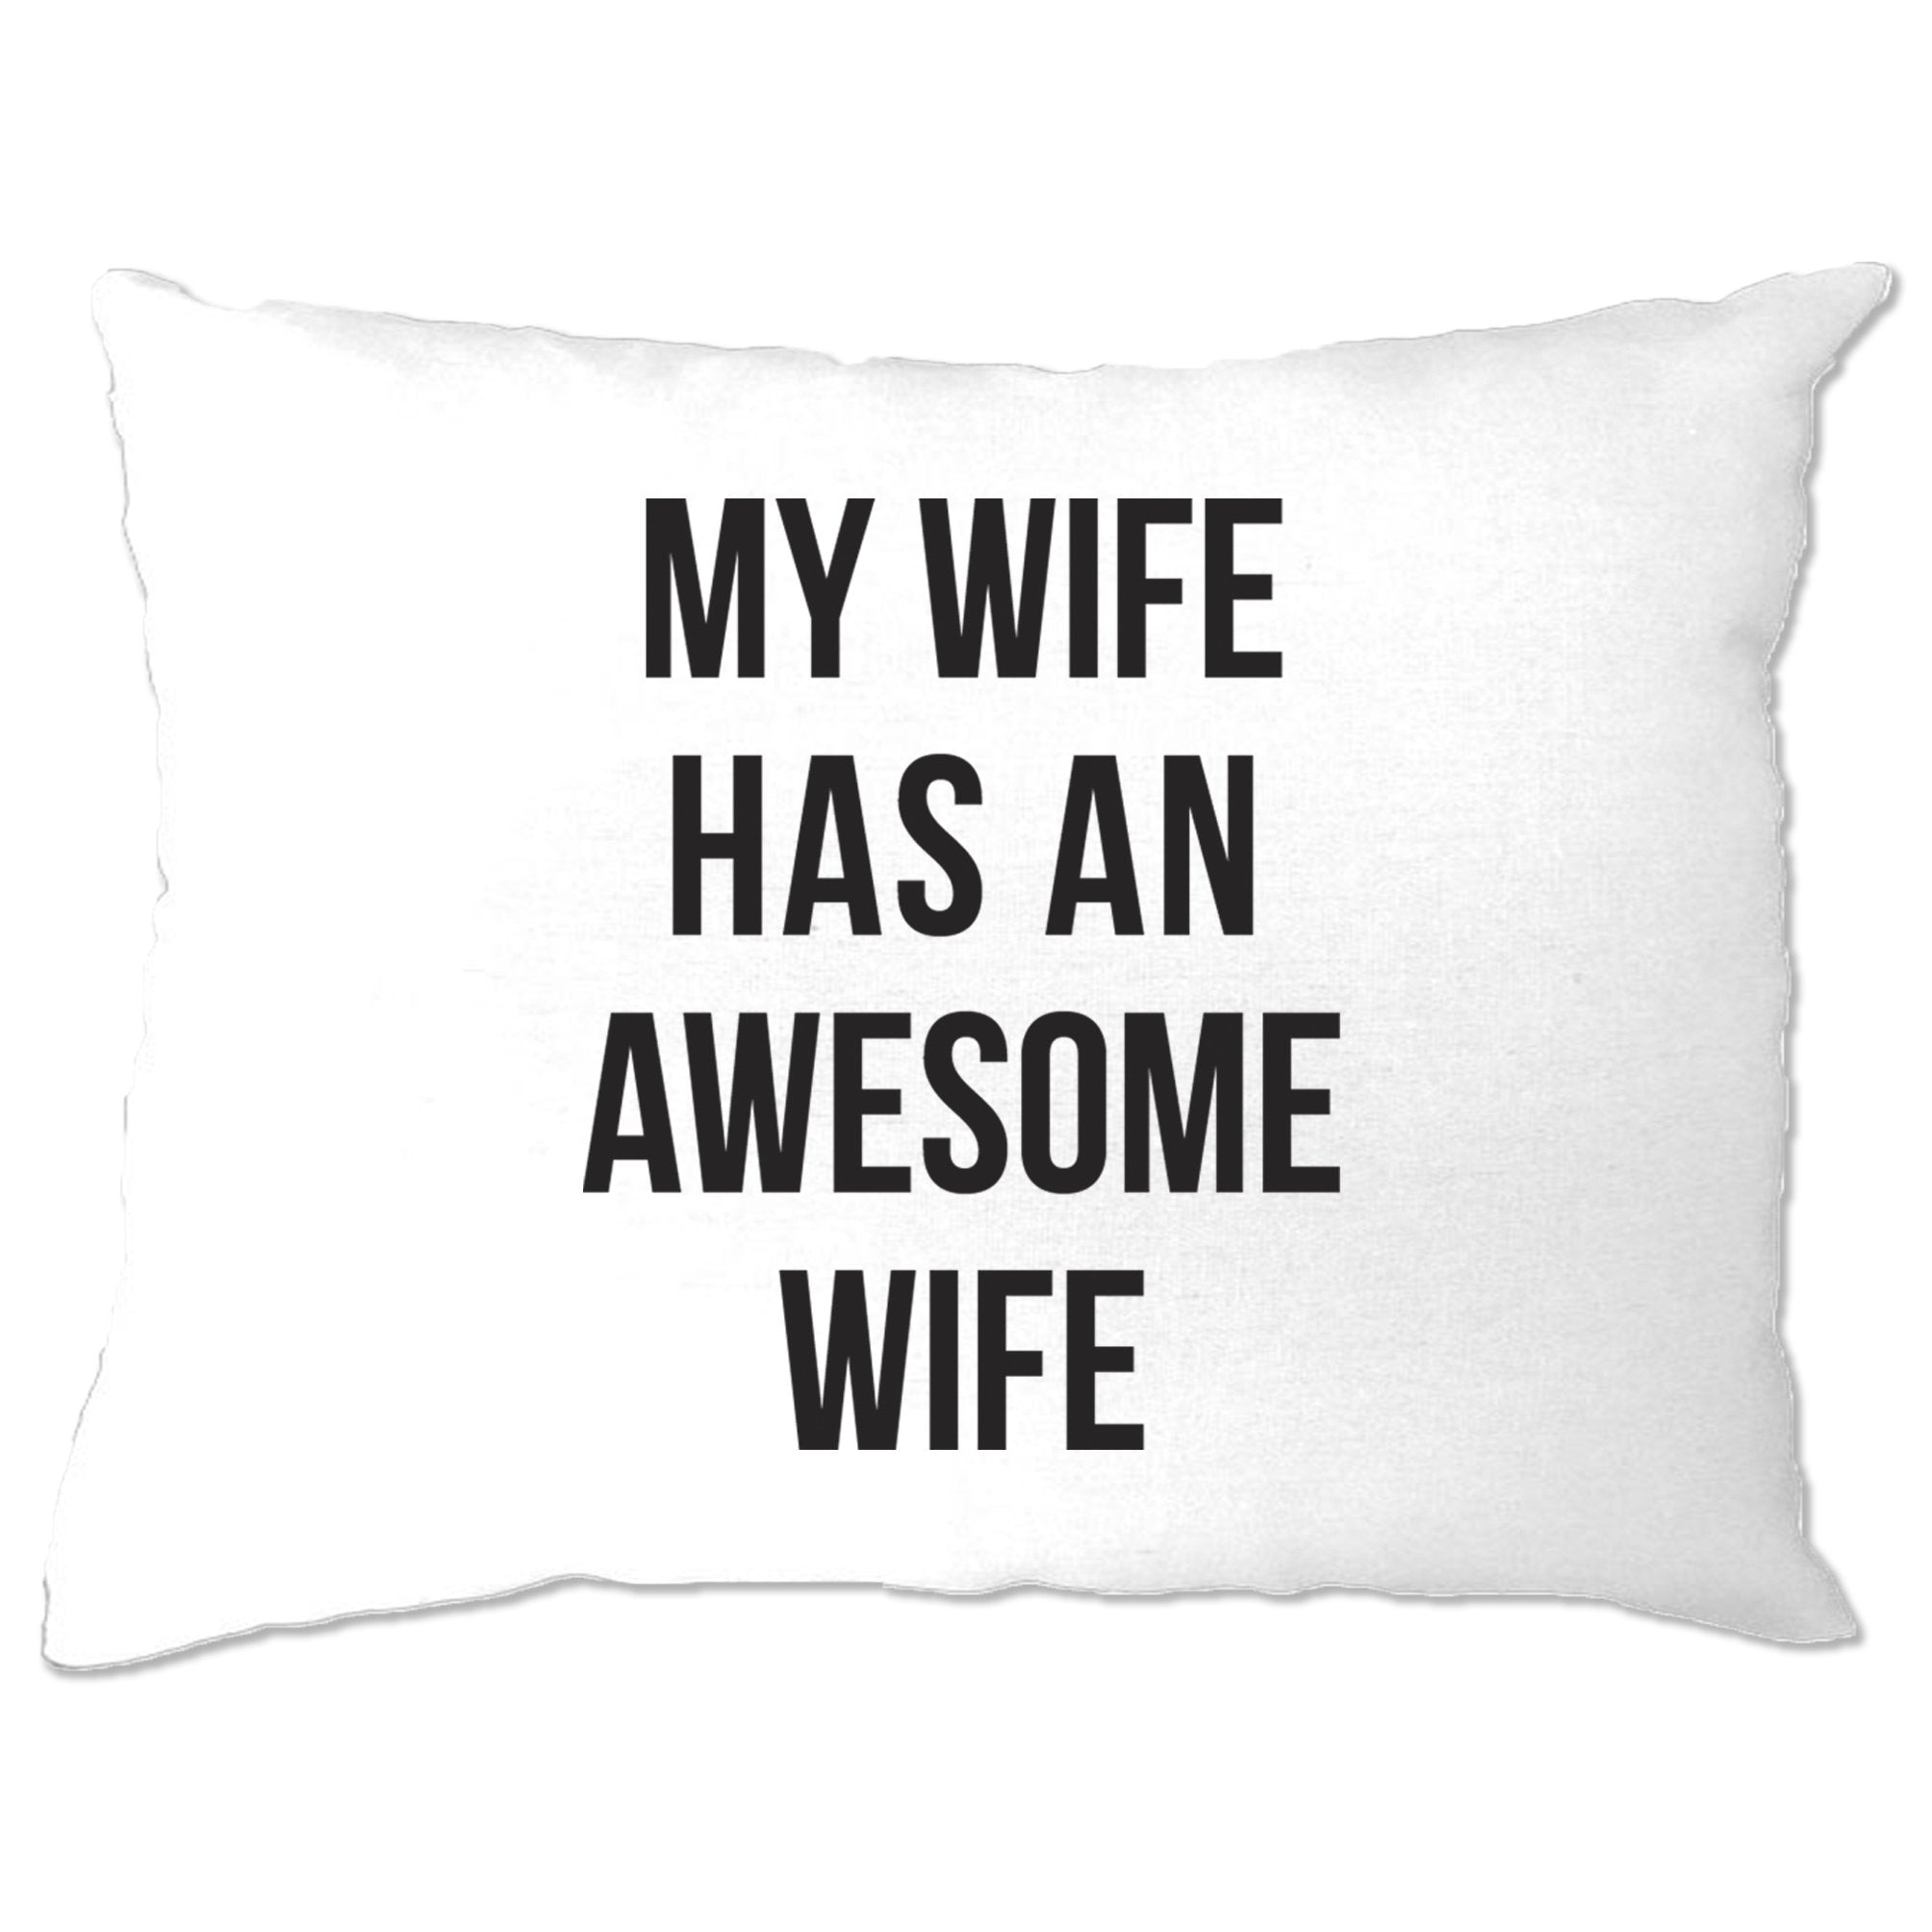 Joke Couples Pillow Case My Wife Has An Awesome Wife